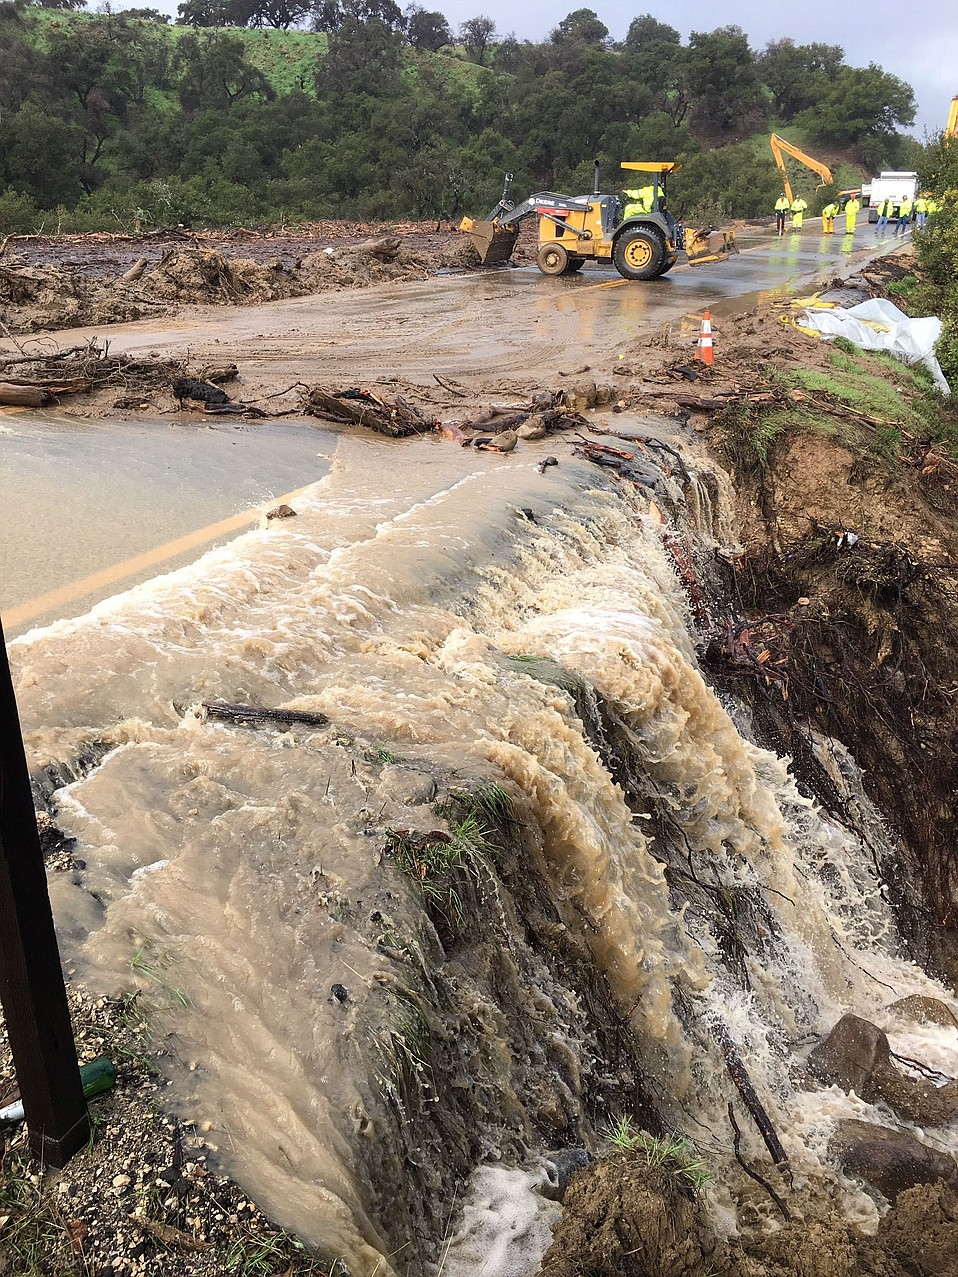 Water continues to pour out of the mountains near Lake Cachuma, closing the 154 after a culvert became blocked.